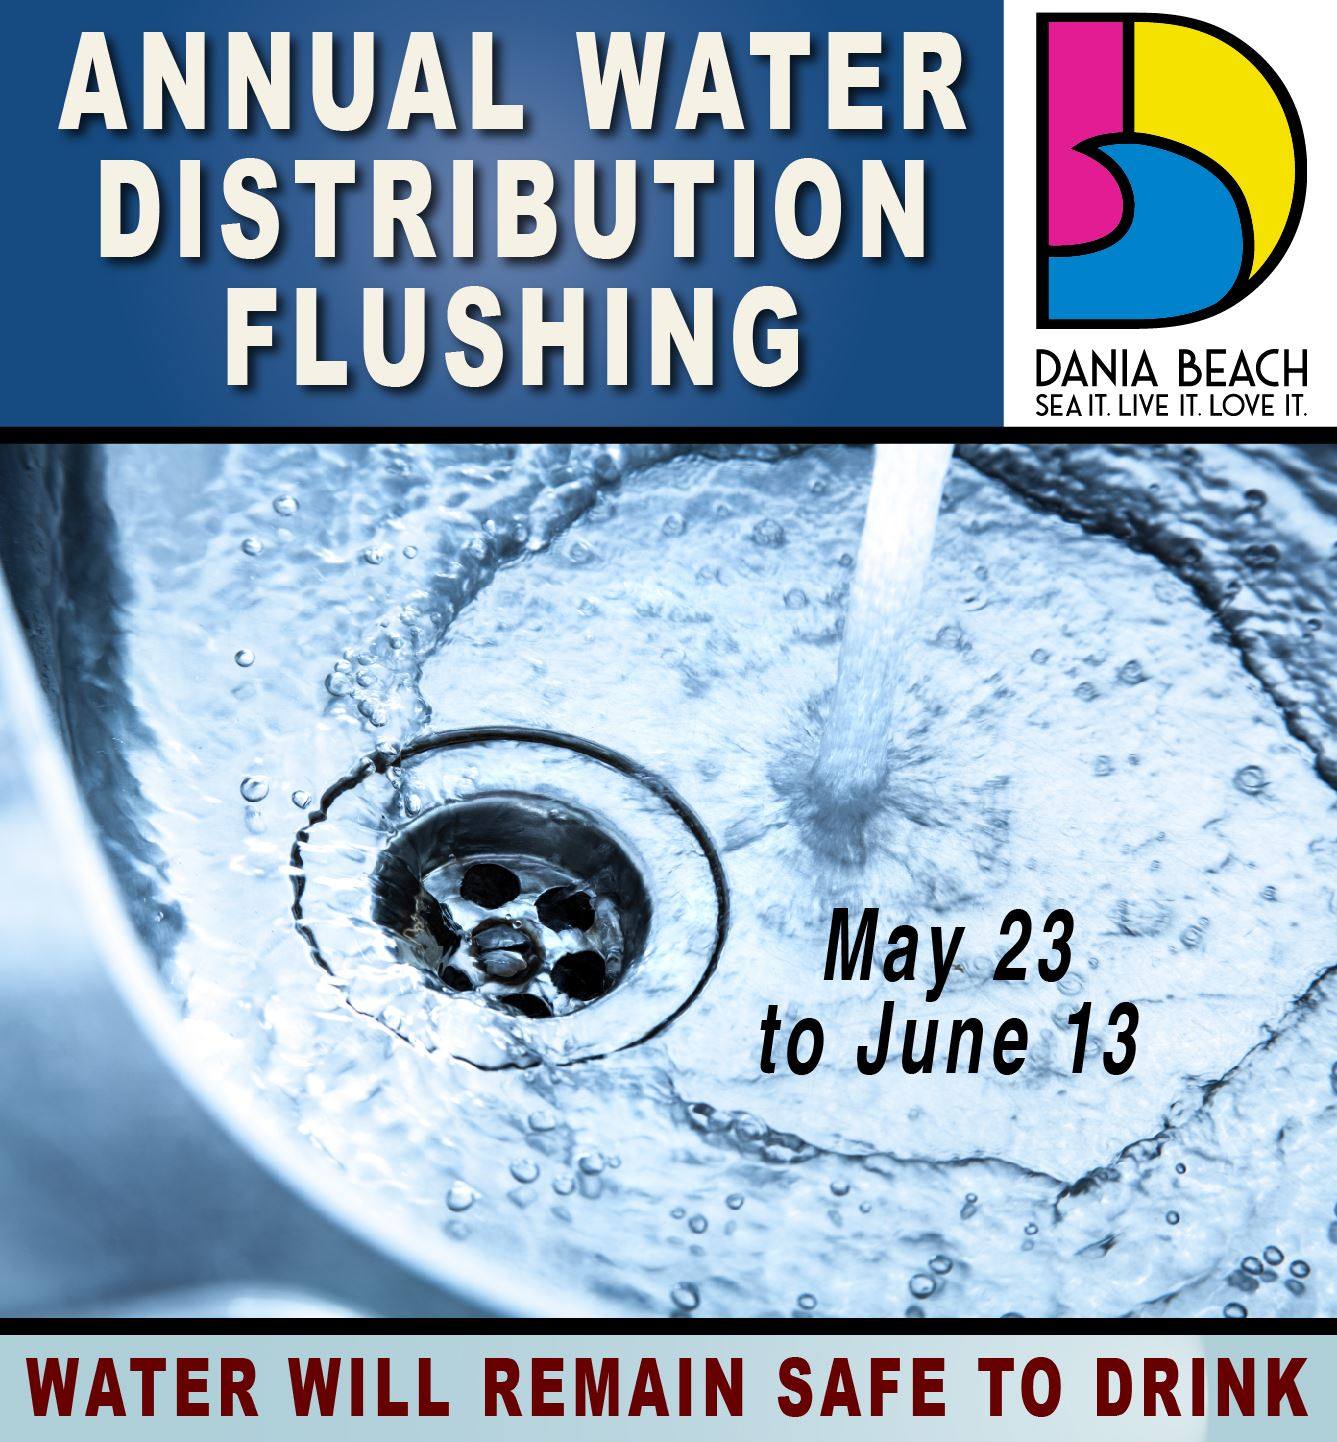 Dania Beach Water Flushing